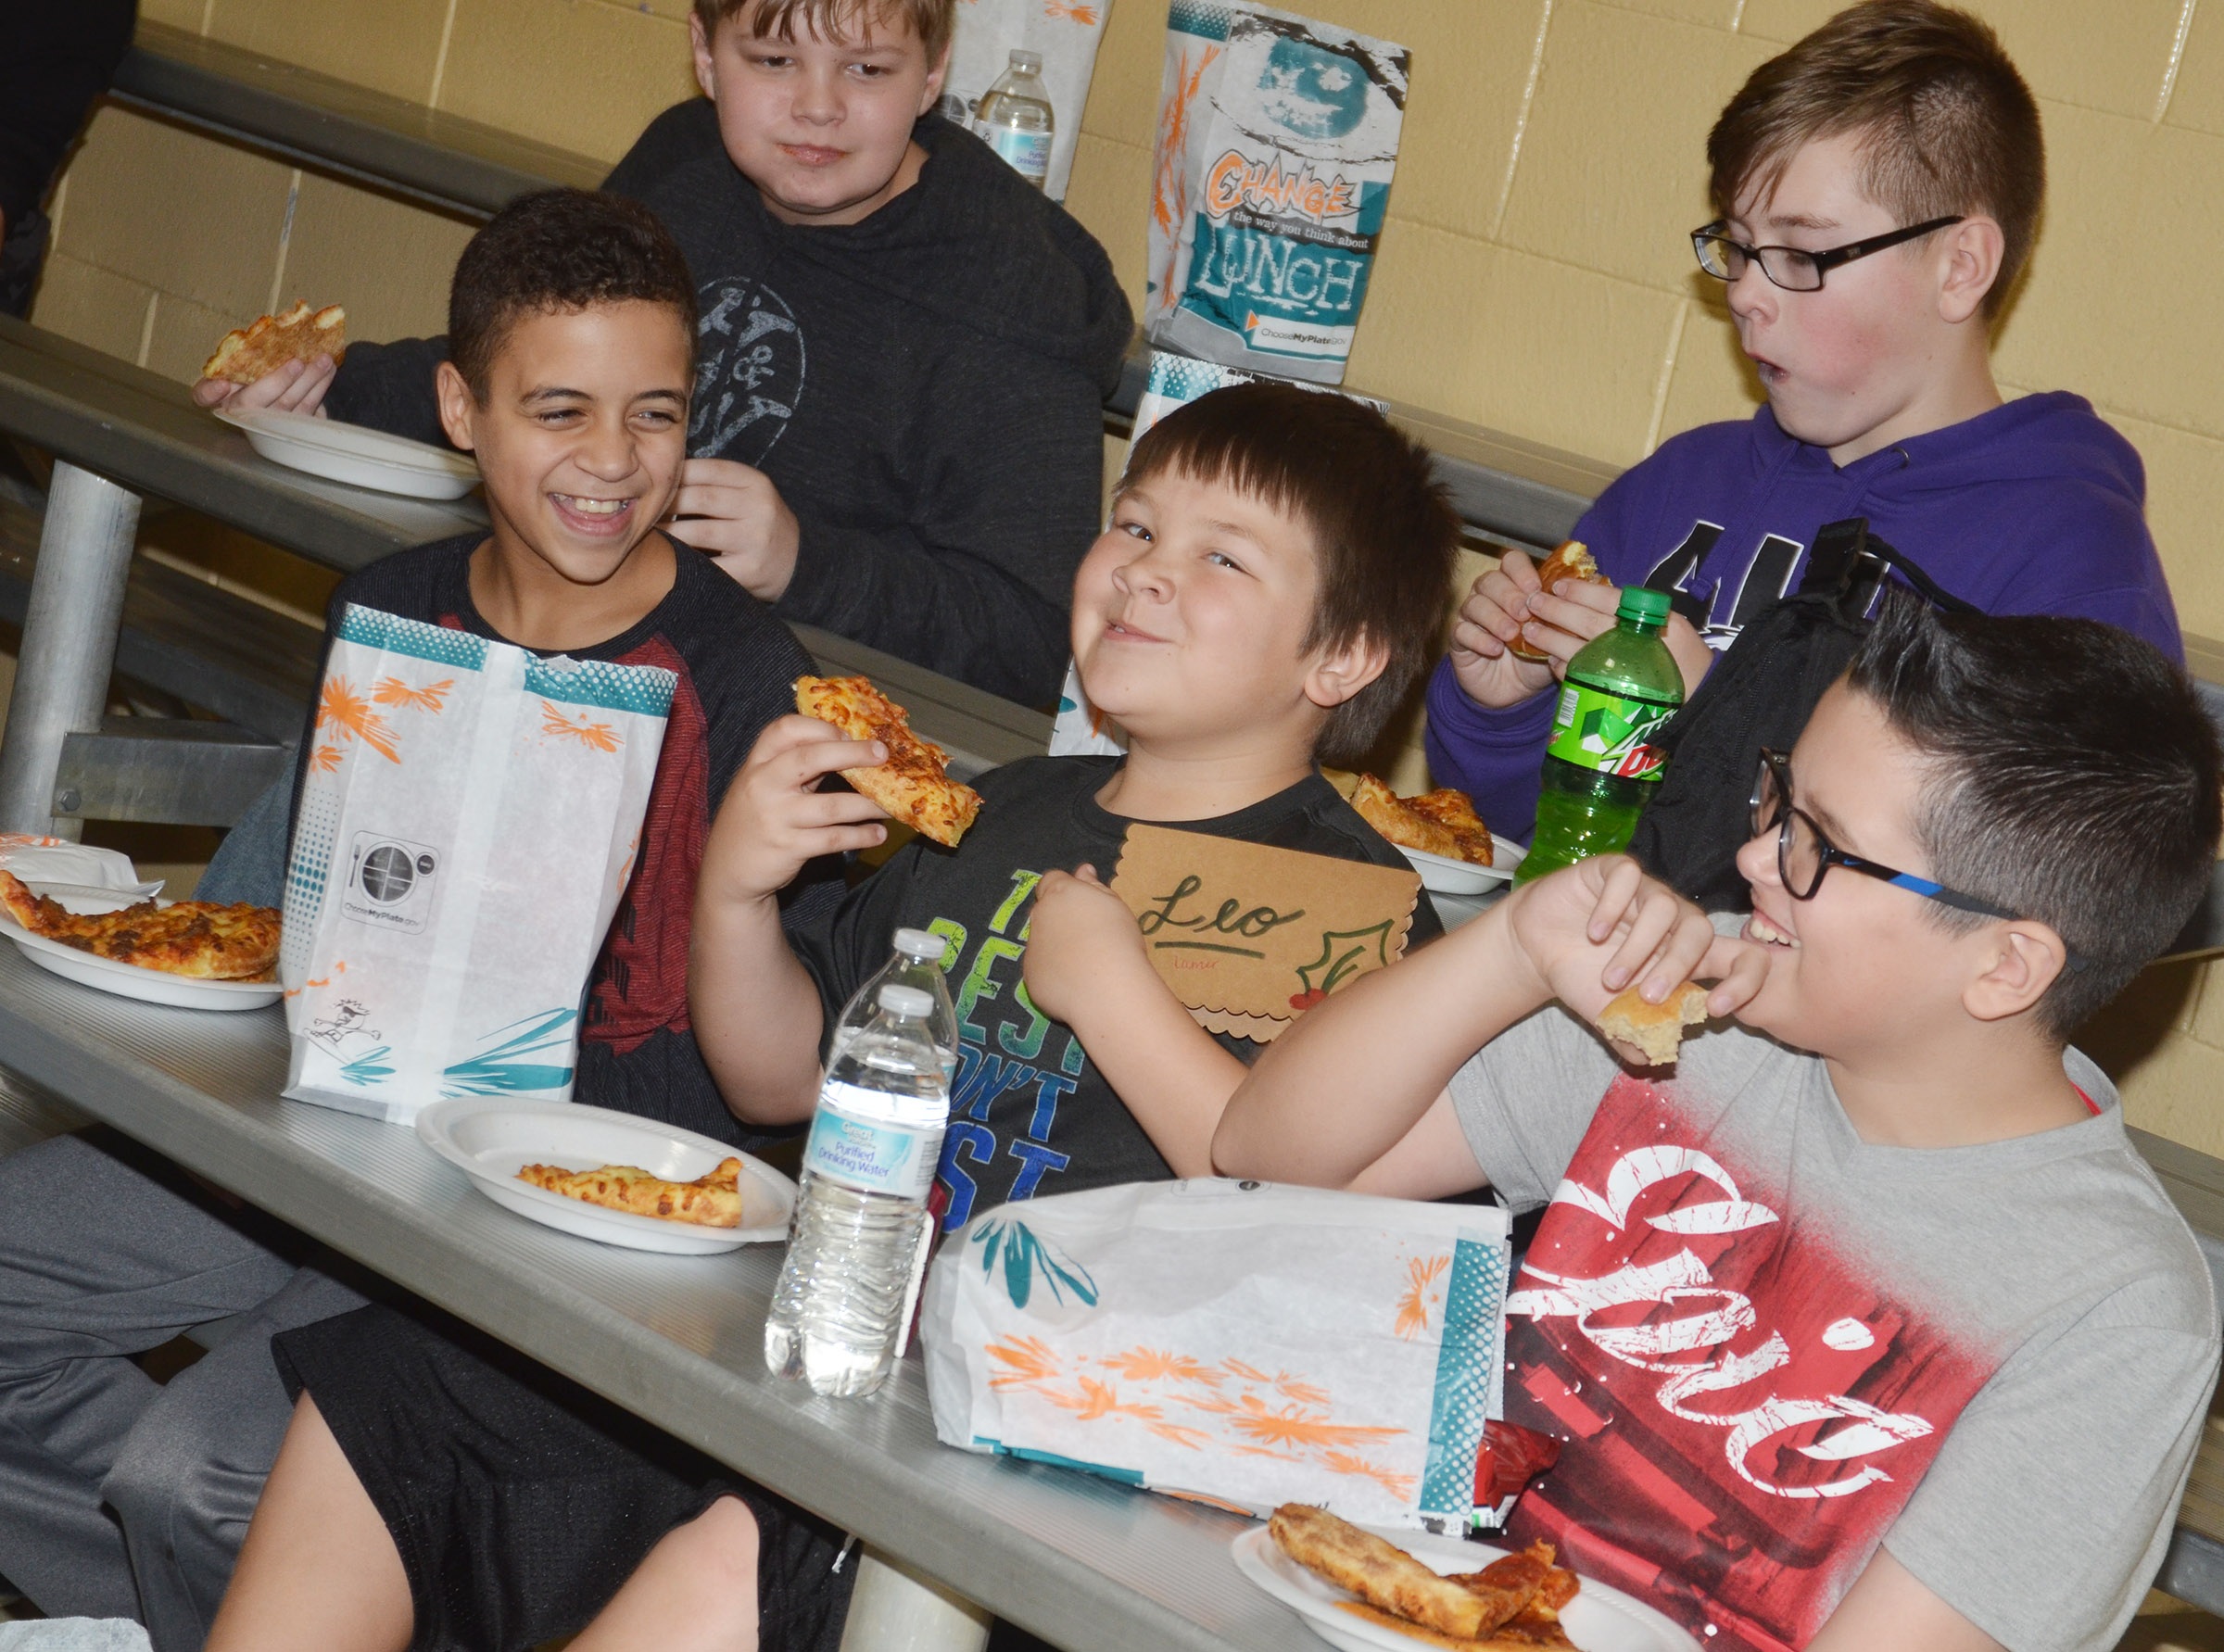 CMS sixth-graders enjoy their pizza. From left, front, are Tucker Cartwright, Leo Lamer and Chase Lawless. In back are Hunter Falls and Jovi Bowen.